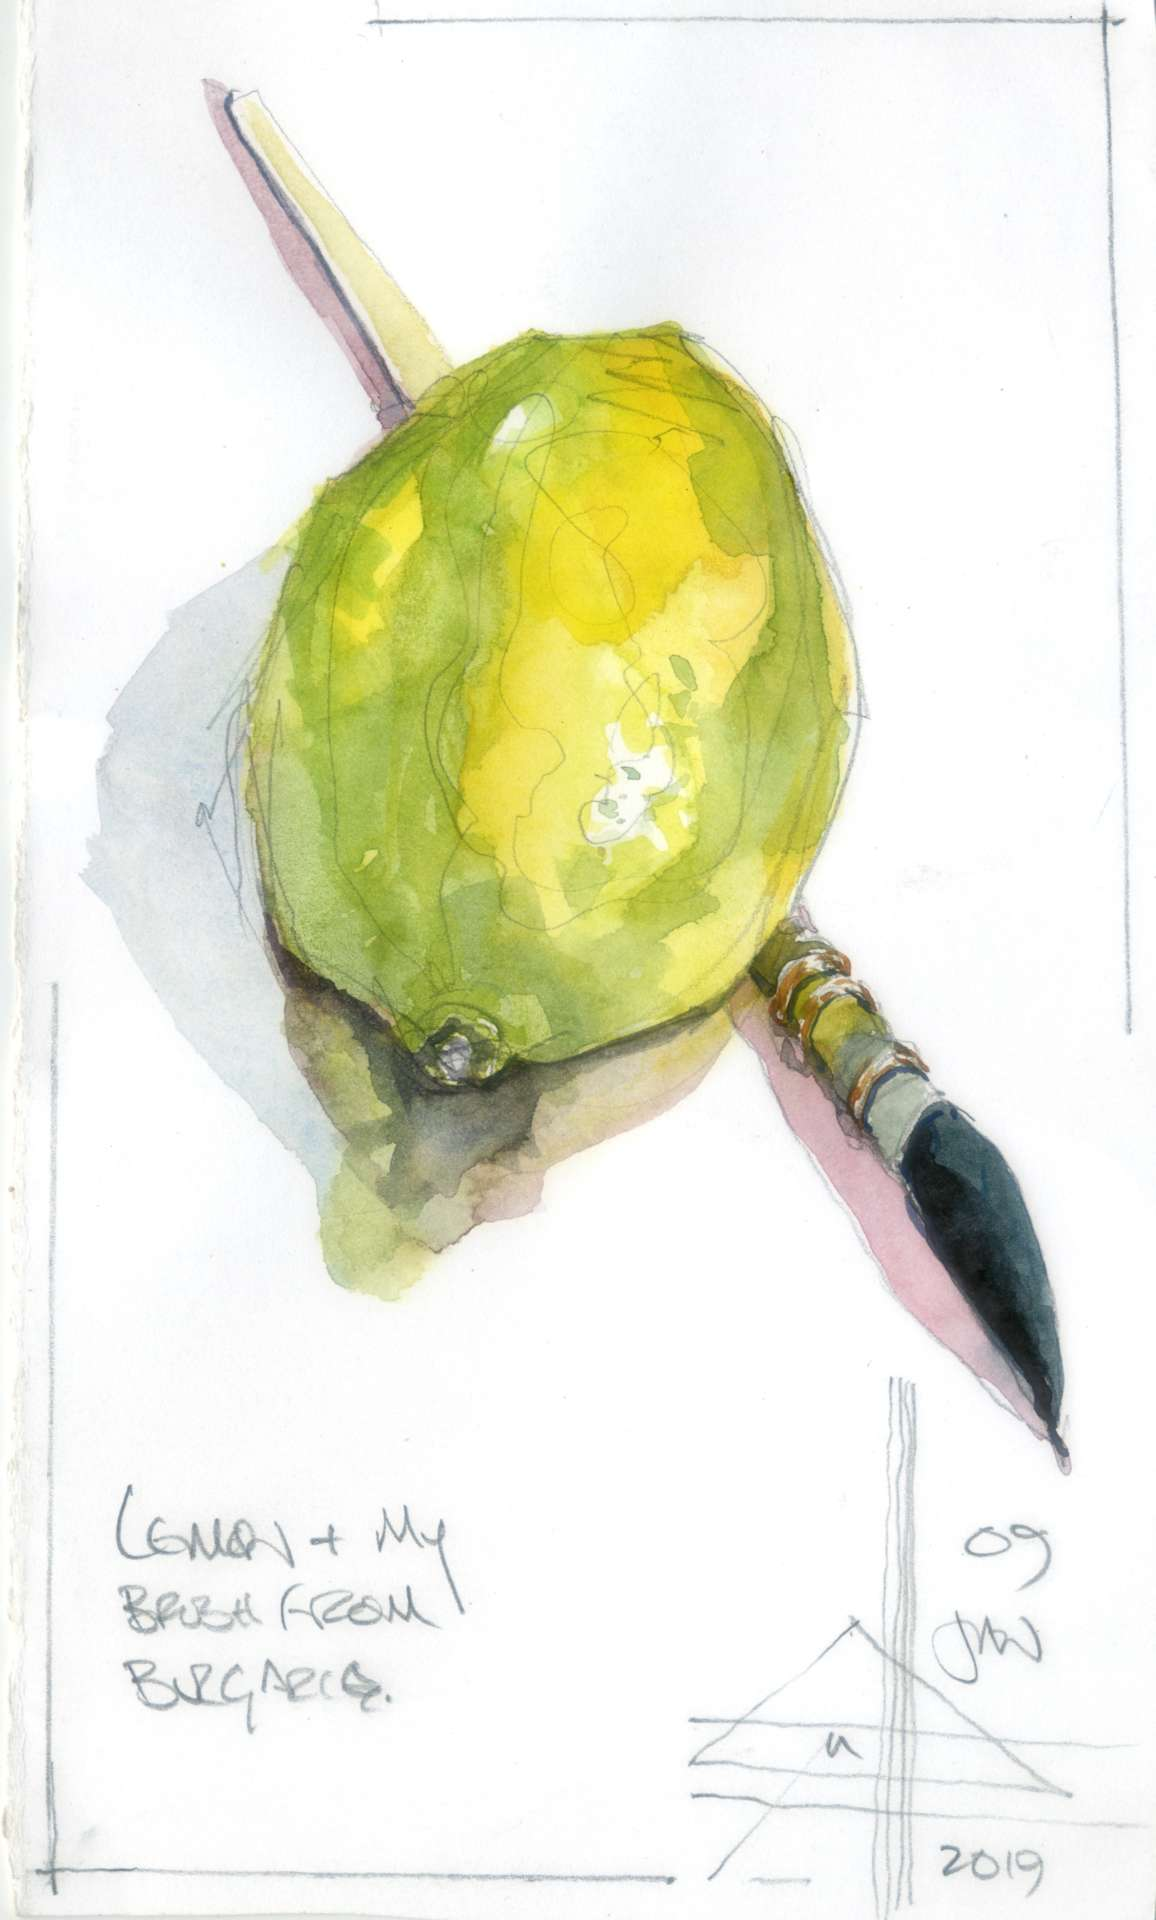 Lemon #14. A fresh lemon painted in watercolour.